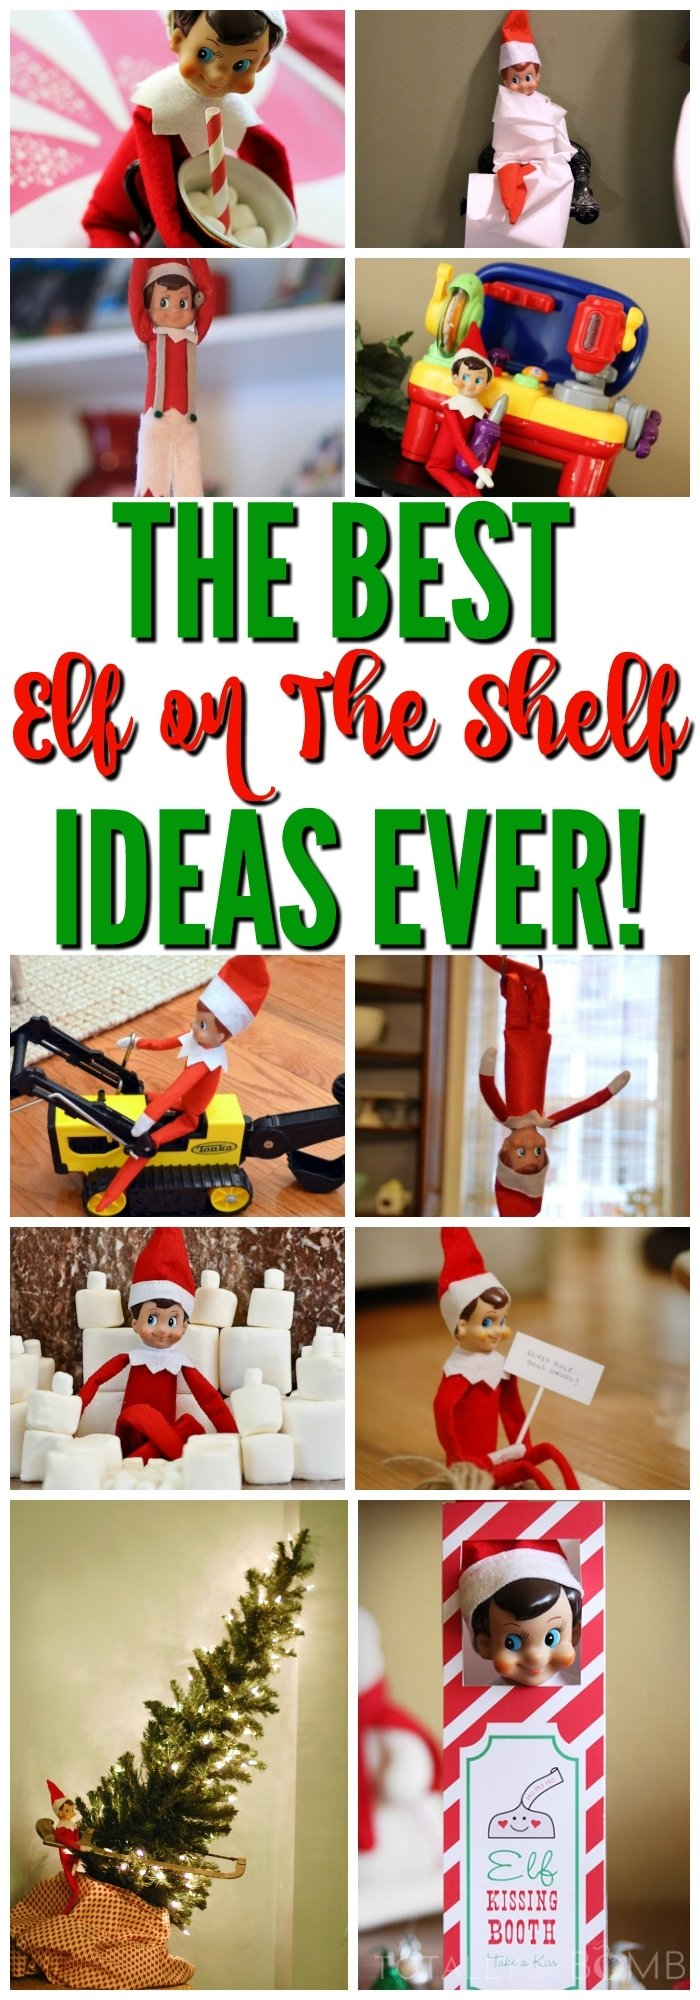 10 Fashionable What Is Elf On The Shelf Ideas 30 totally genius and easy elf on the shelf ideas 6 2020